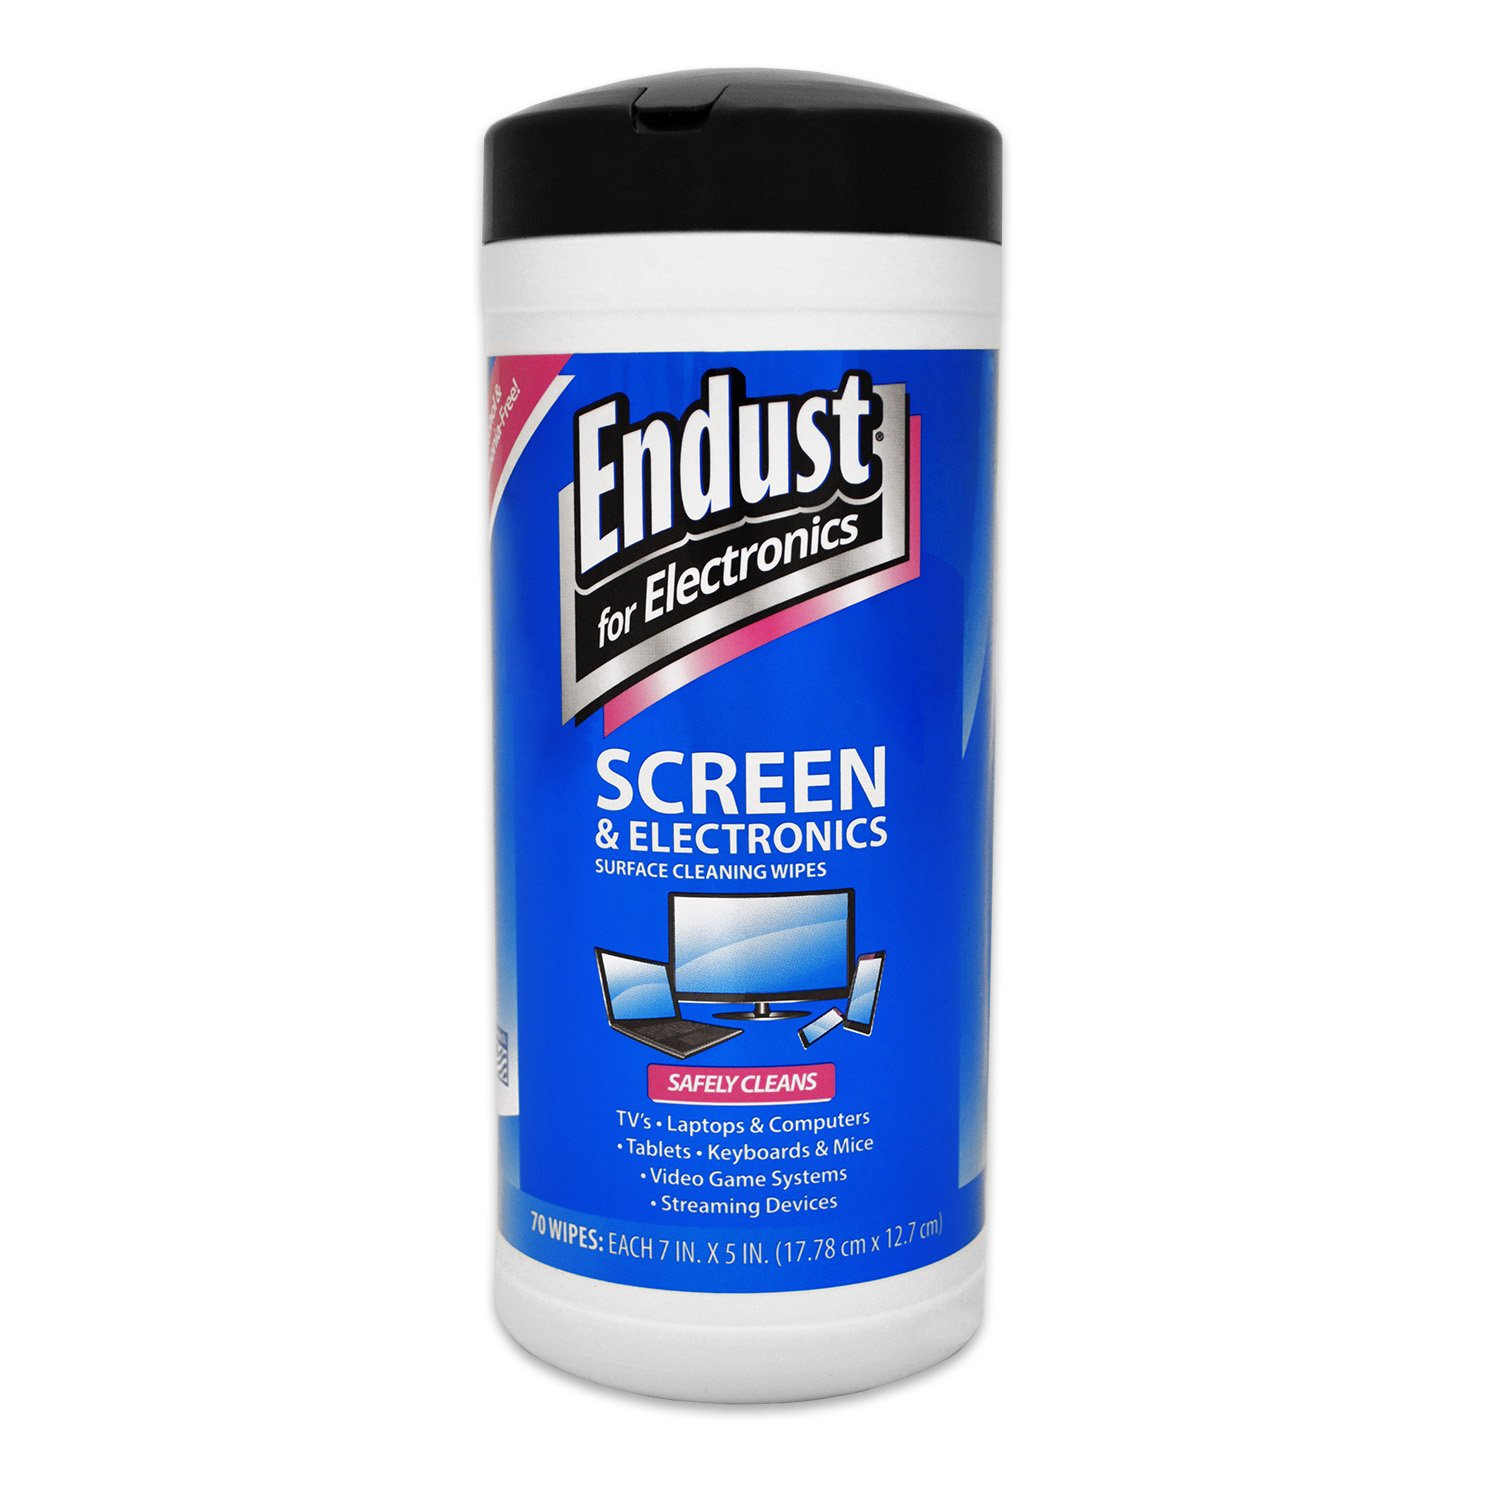 Endust for Electronics, Screen cleaning wipes, Surface cleaning, Great LCD and Plasma wipes, 70 Count (11506)